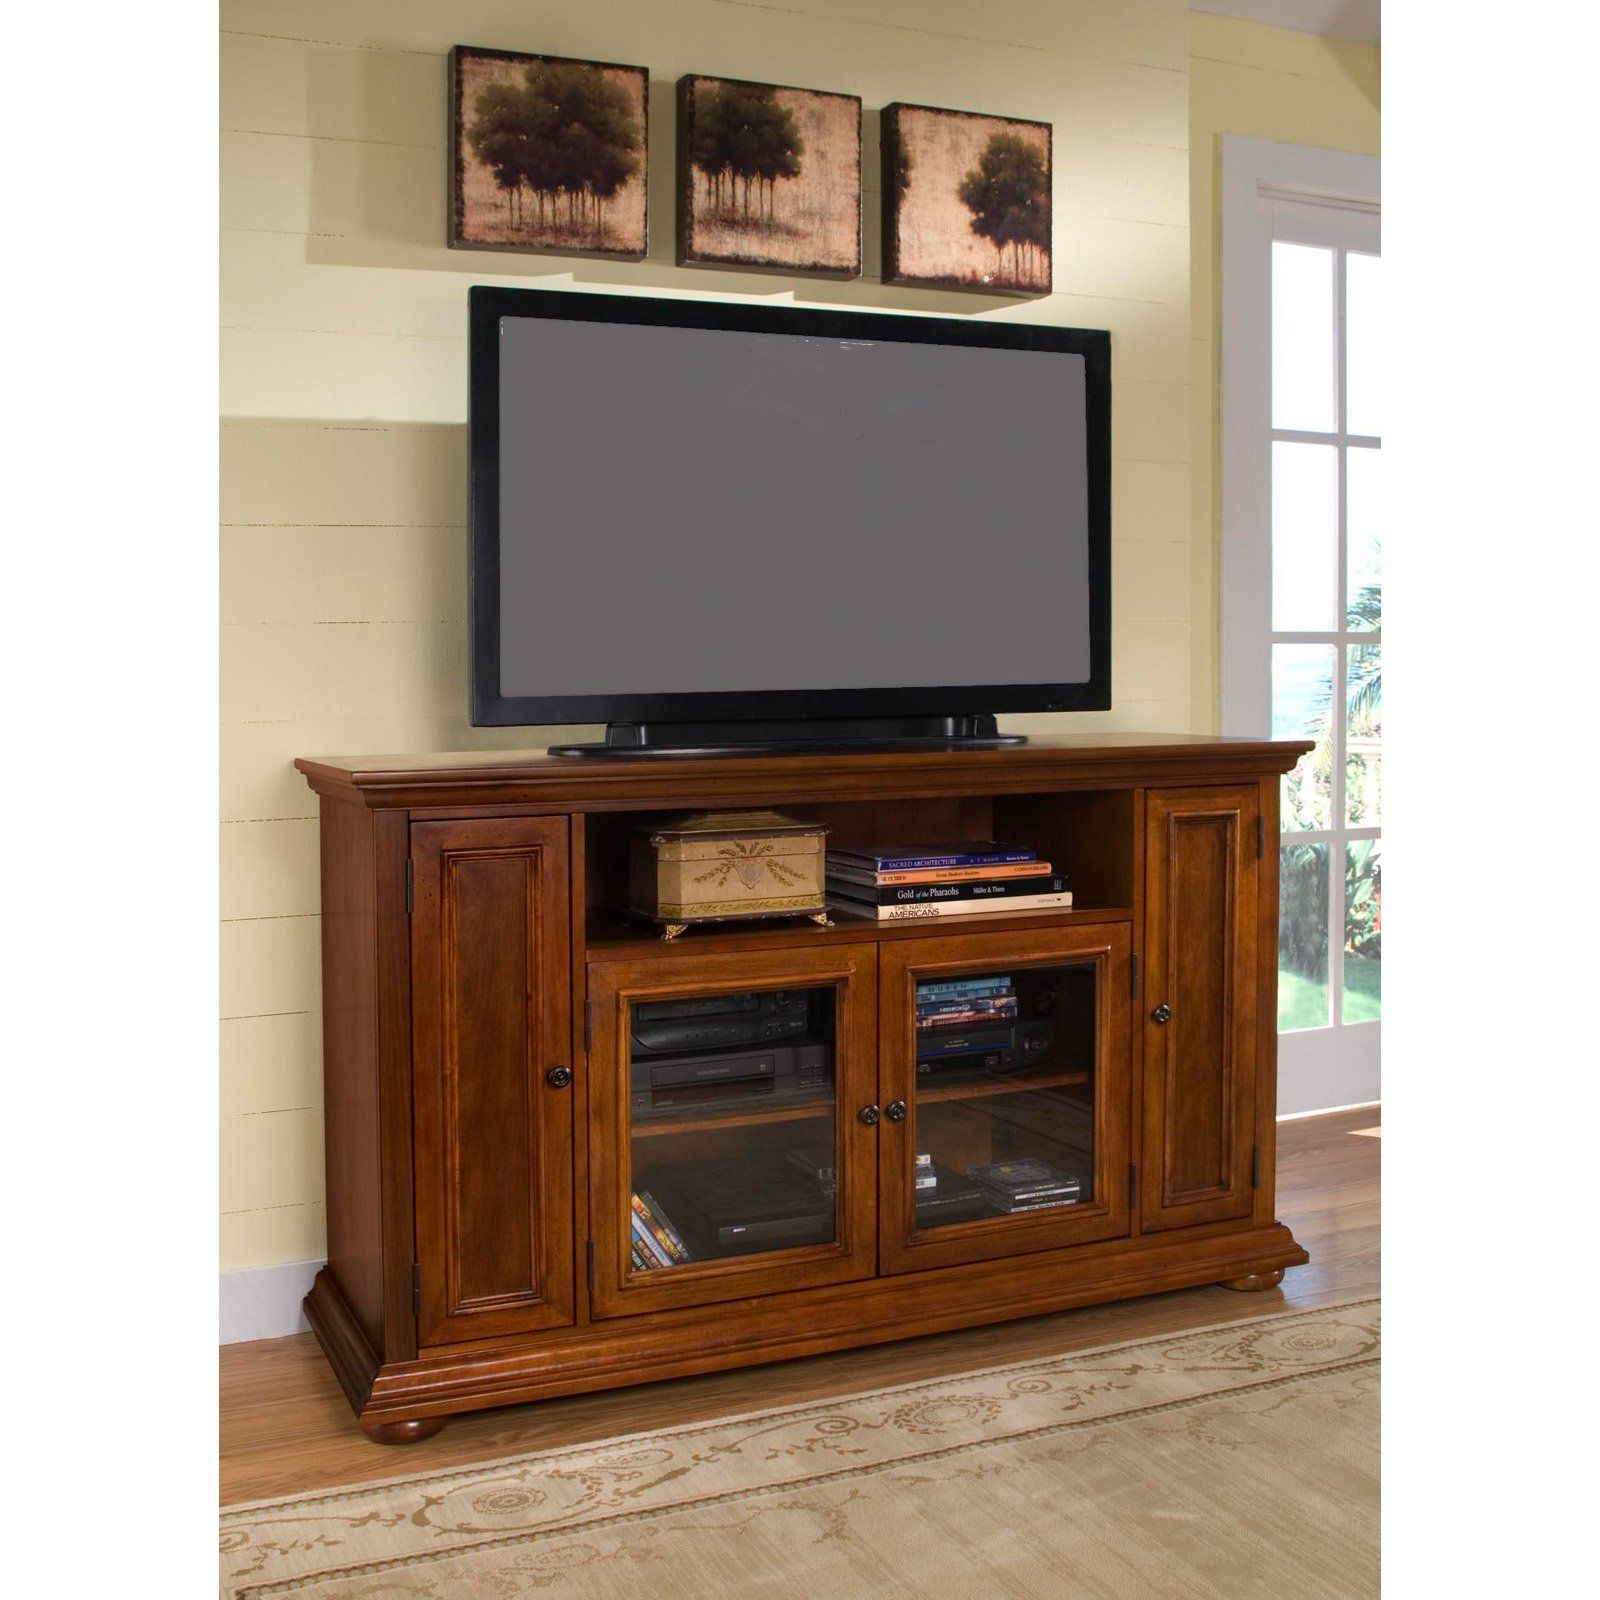 Homestead Tall Tv Stand Www Hayneedle Com Tall Tv Stands Home Entertainment Credenza Tall tv stand for 60 inch tv